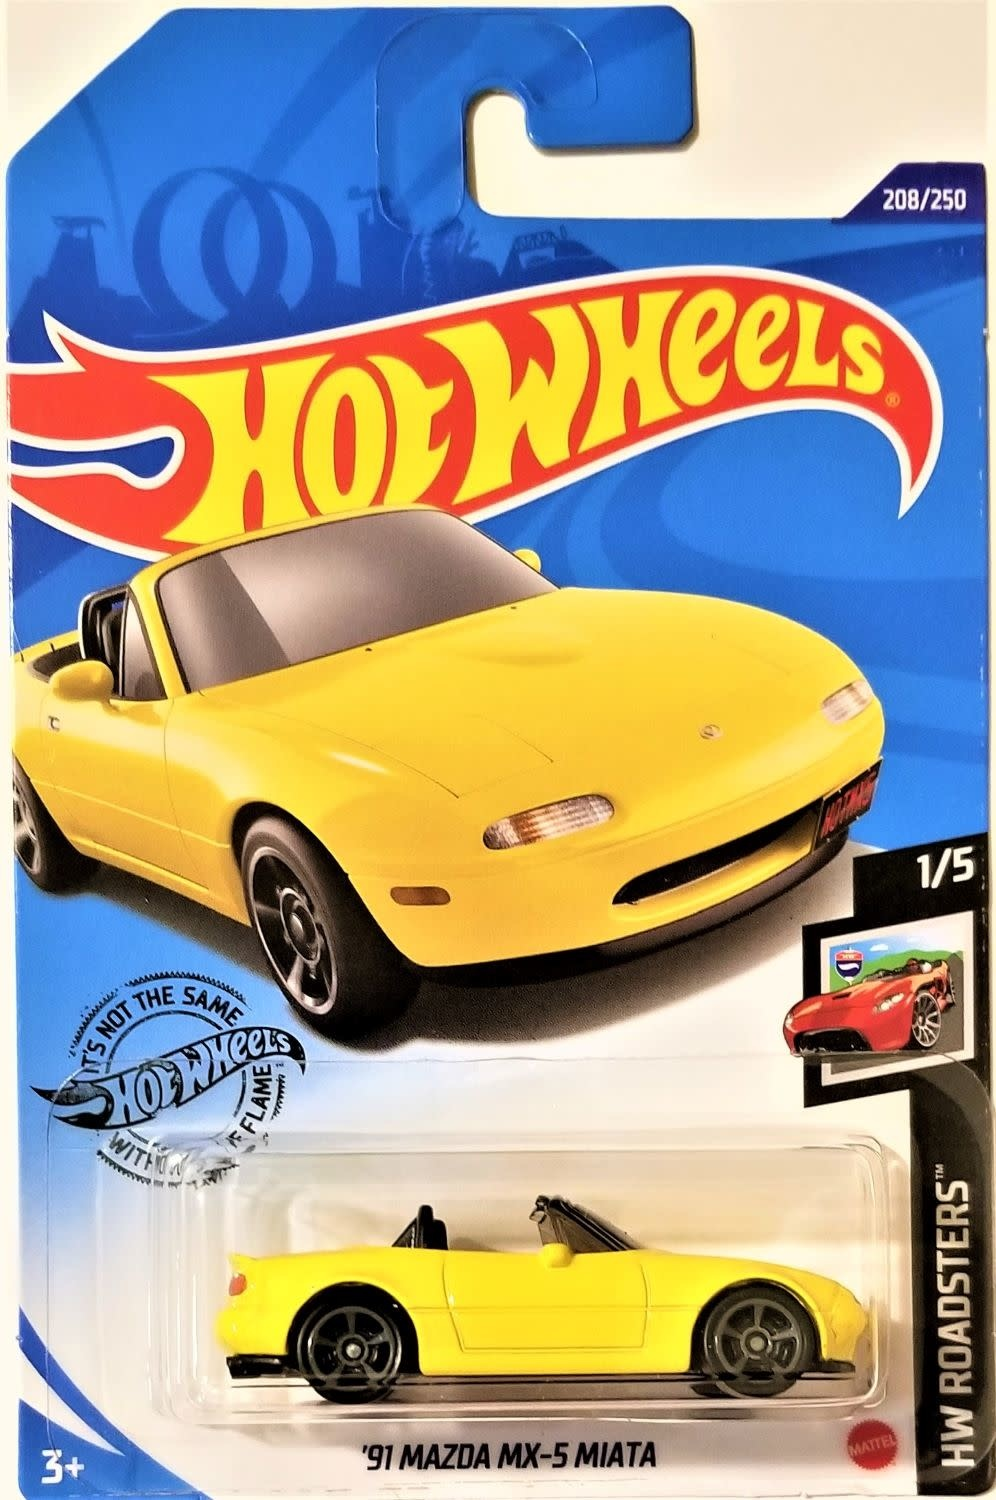 Hot Wheels 208/250   '91 Mazda MX-5 Miata